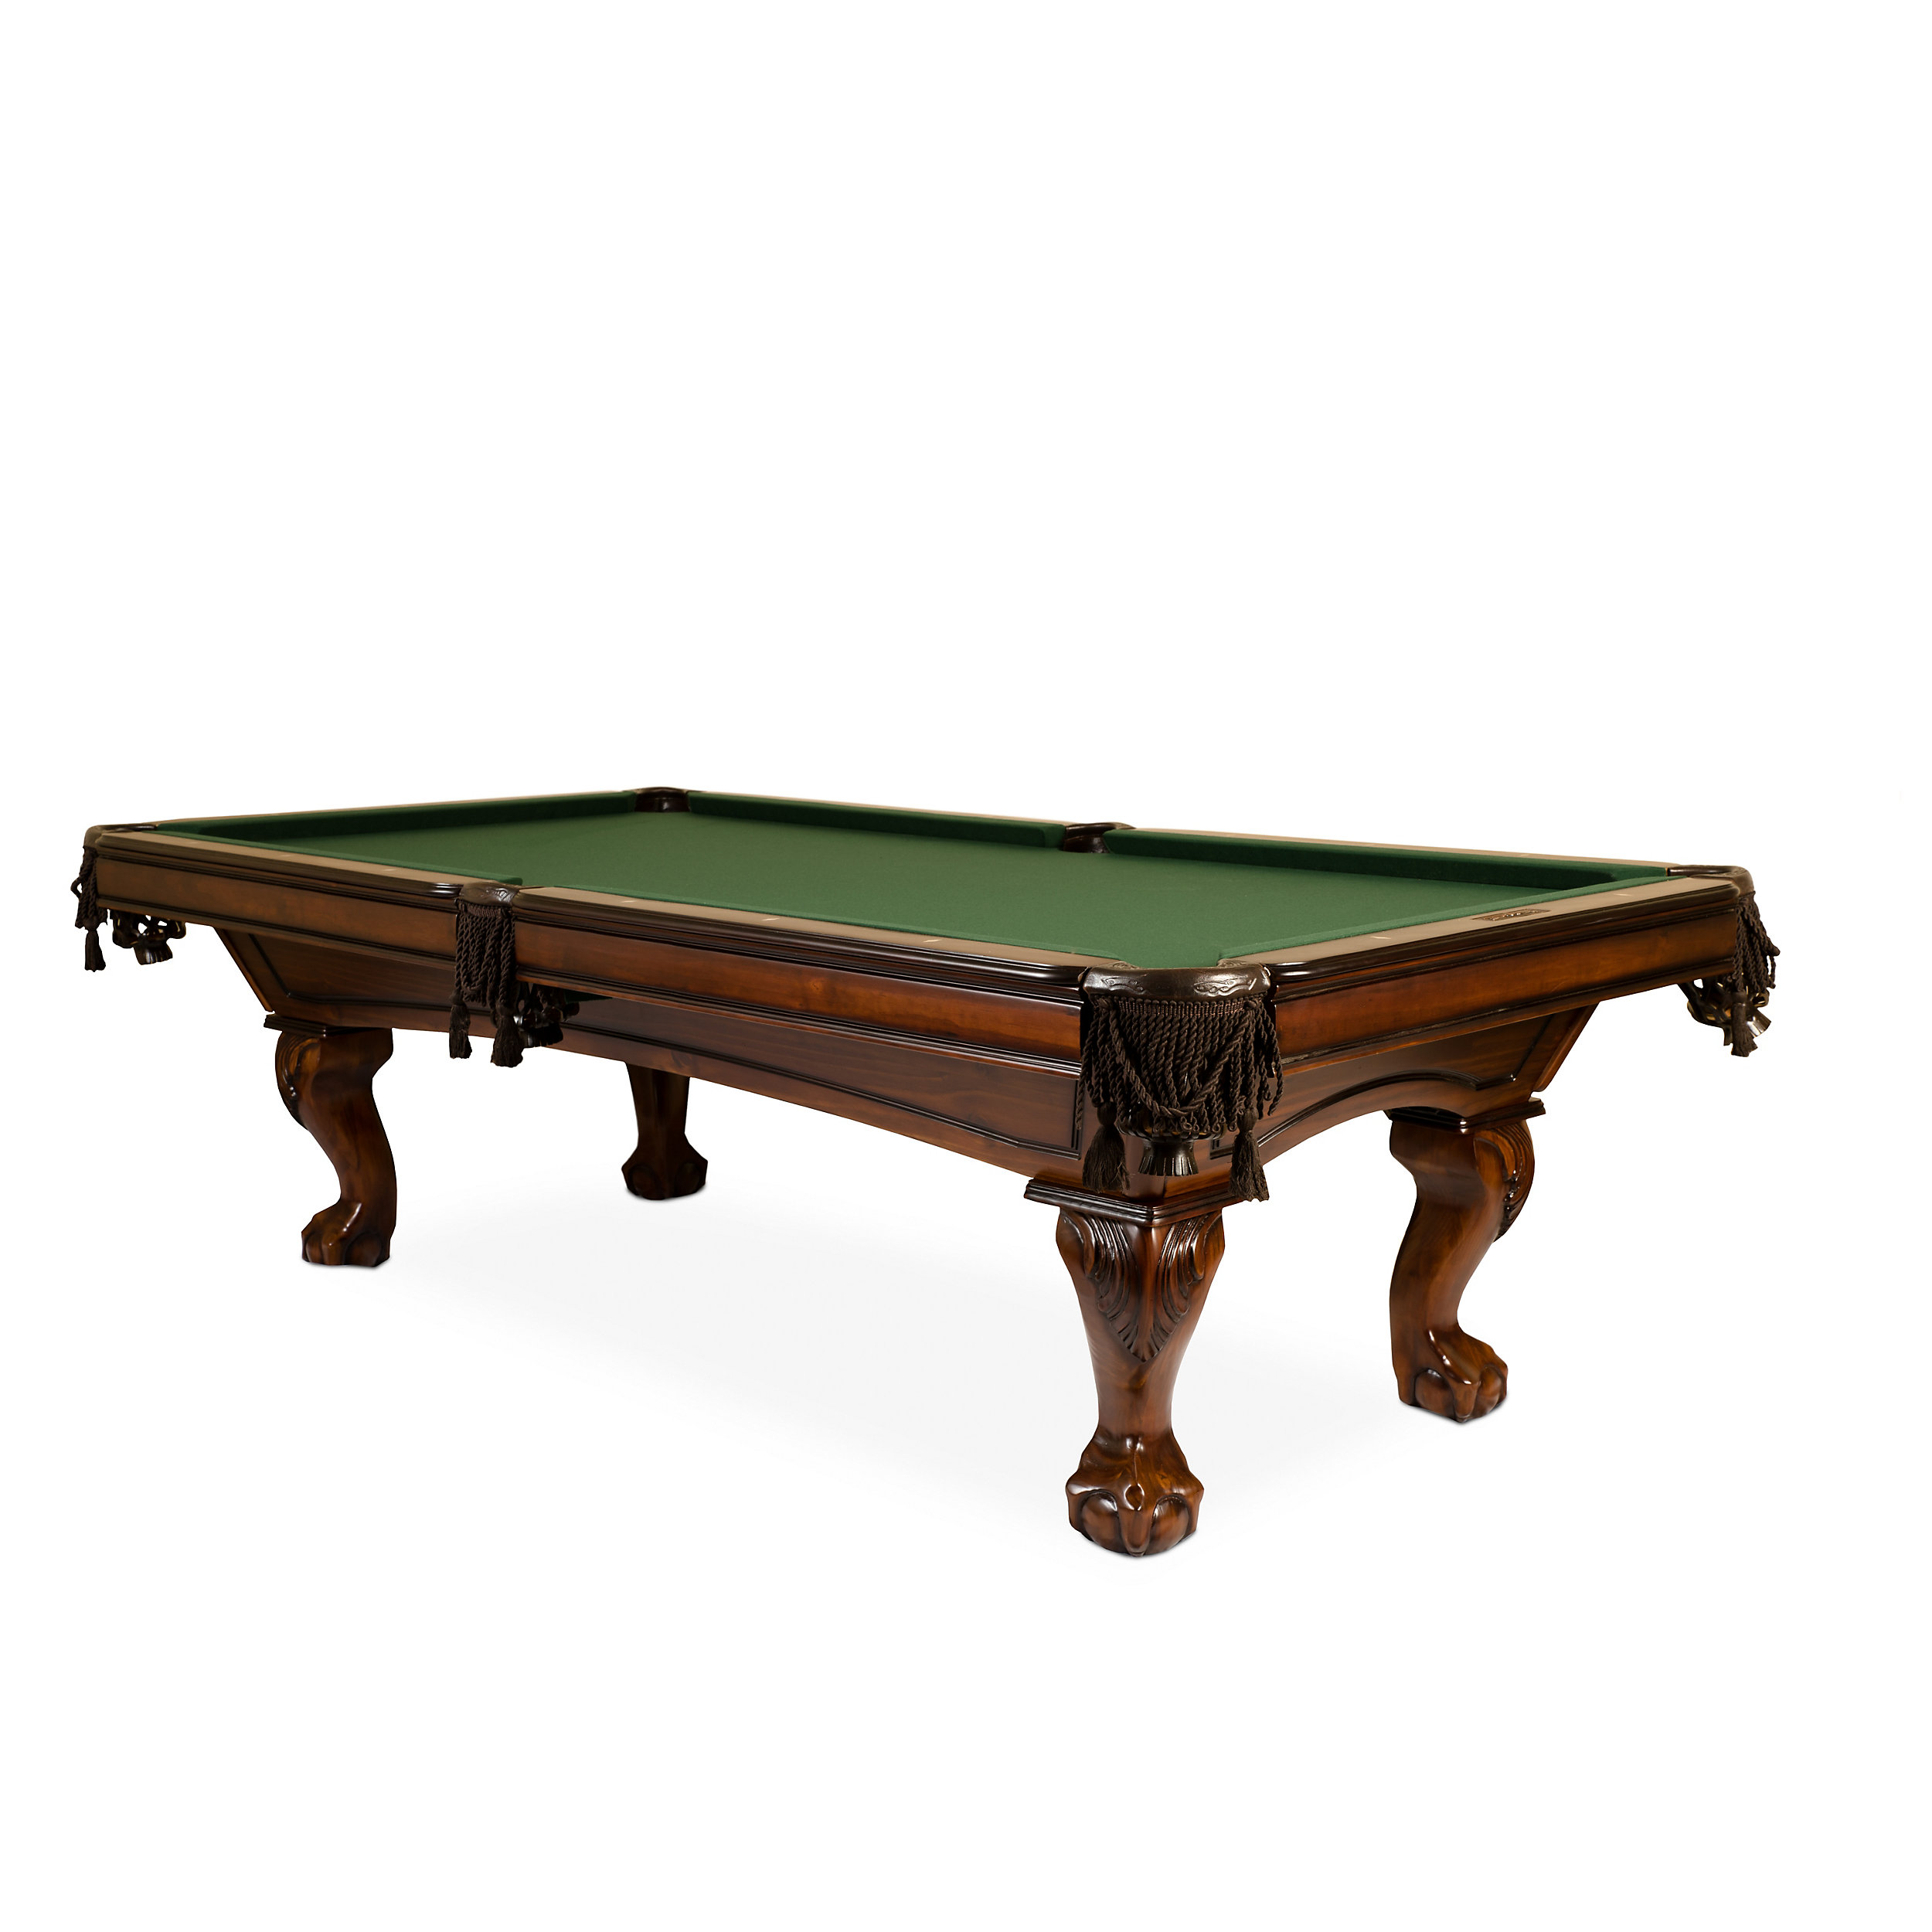 Presidential Pool Table Price List Pool Tables For Sale Pool Tables For  Sale Las Vegas Billiards . Presidential Pool Table ...